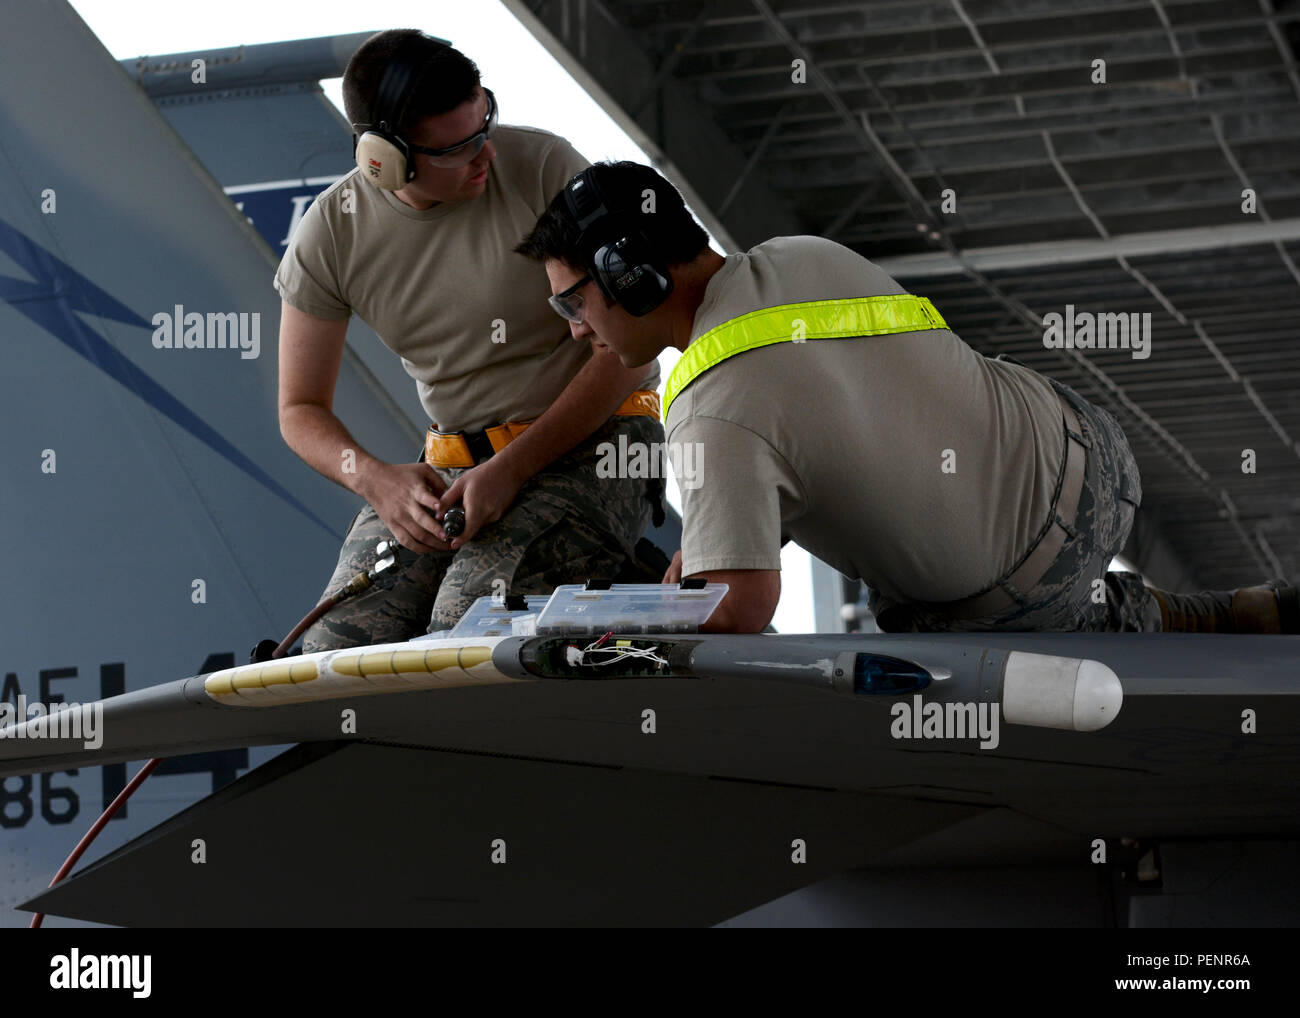 Two U.S. Air Force airmen from the 125th Fighter Wing Machine shop work on an F-15C Eagle wing to repair damaged fasteners in Jacksonville, Fla., Jan. 9, 2016. (U.S. Air National Guard photo by Tech. Sgt. Troy Anderson/Released) - Stock Image